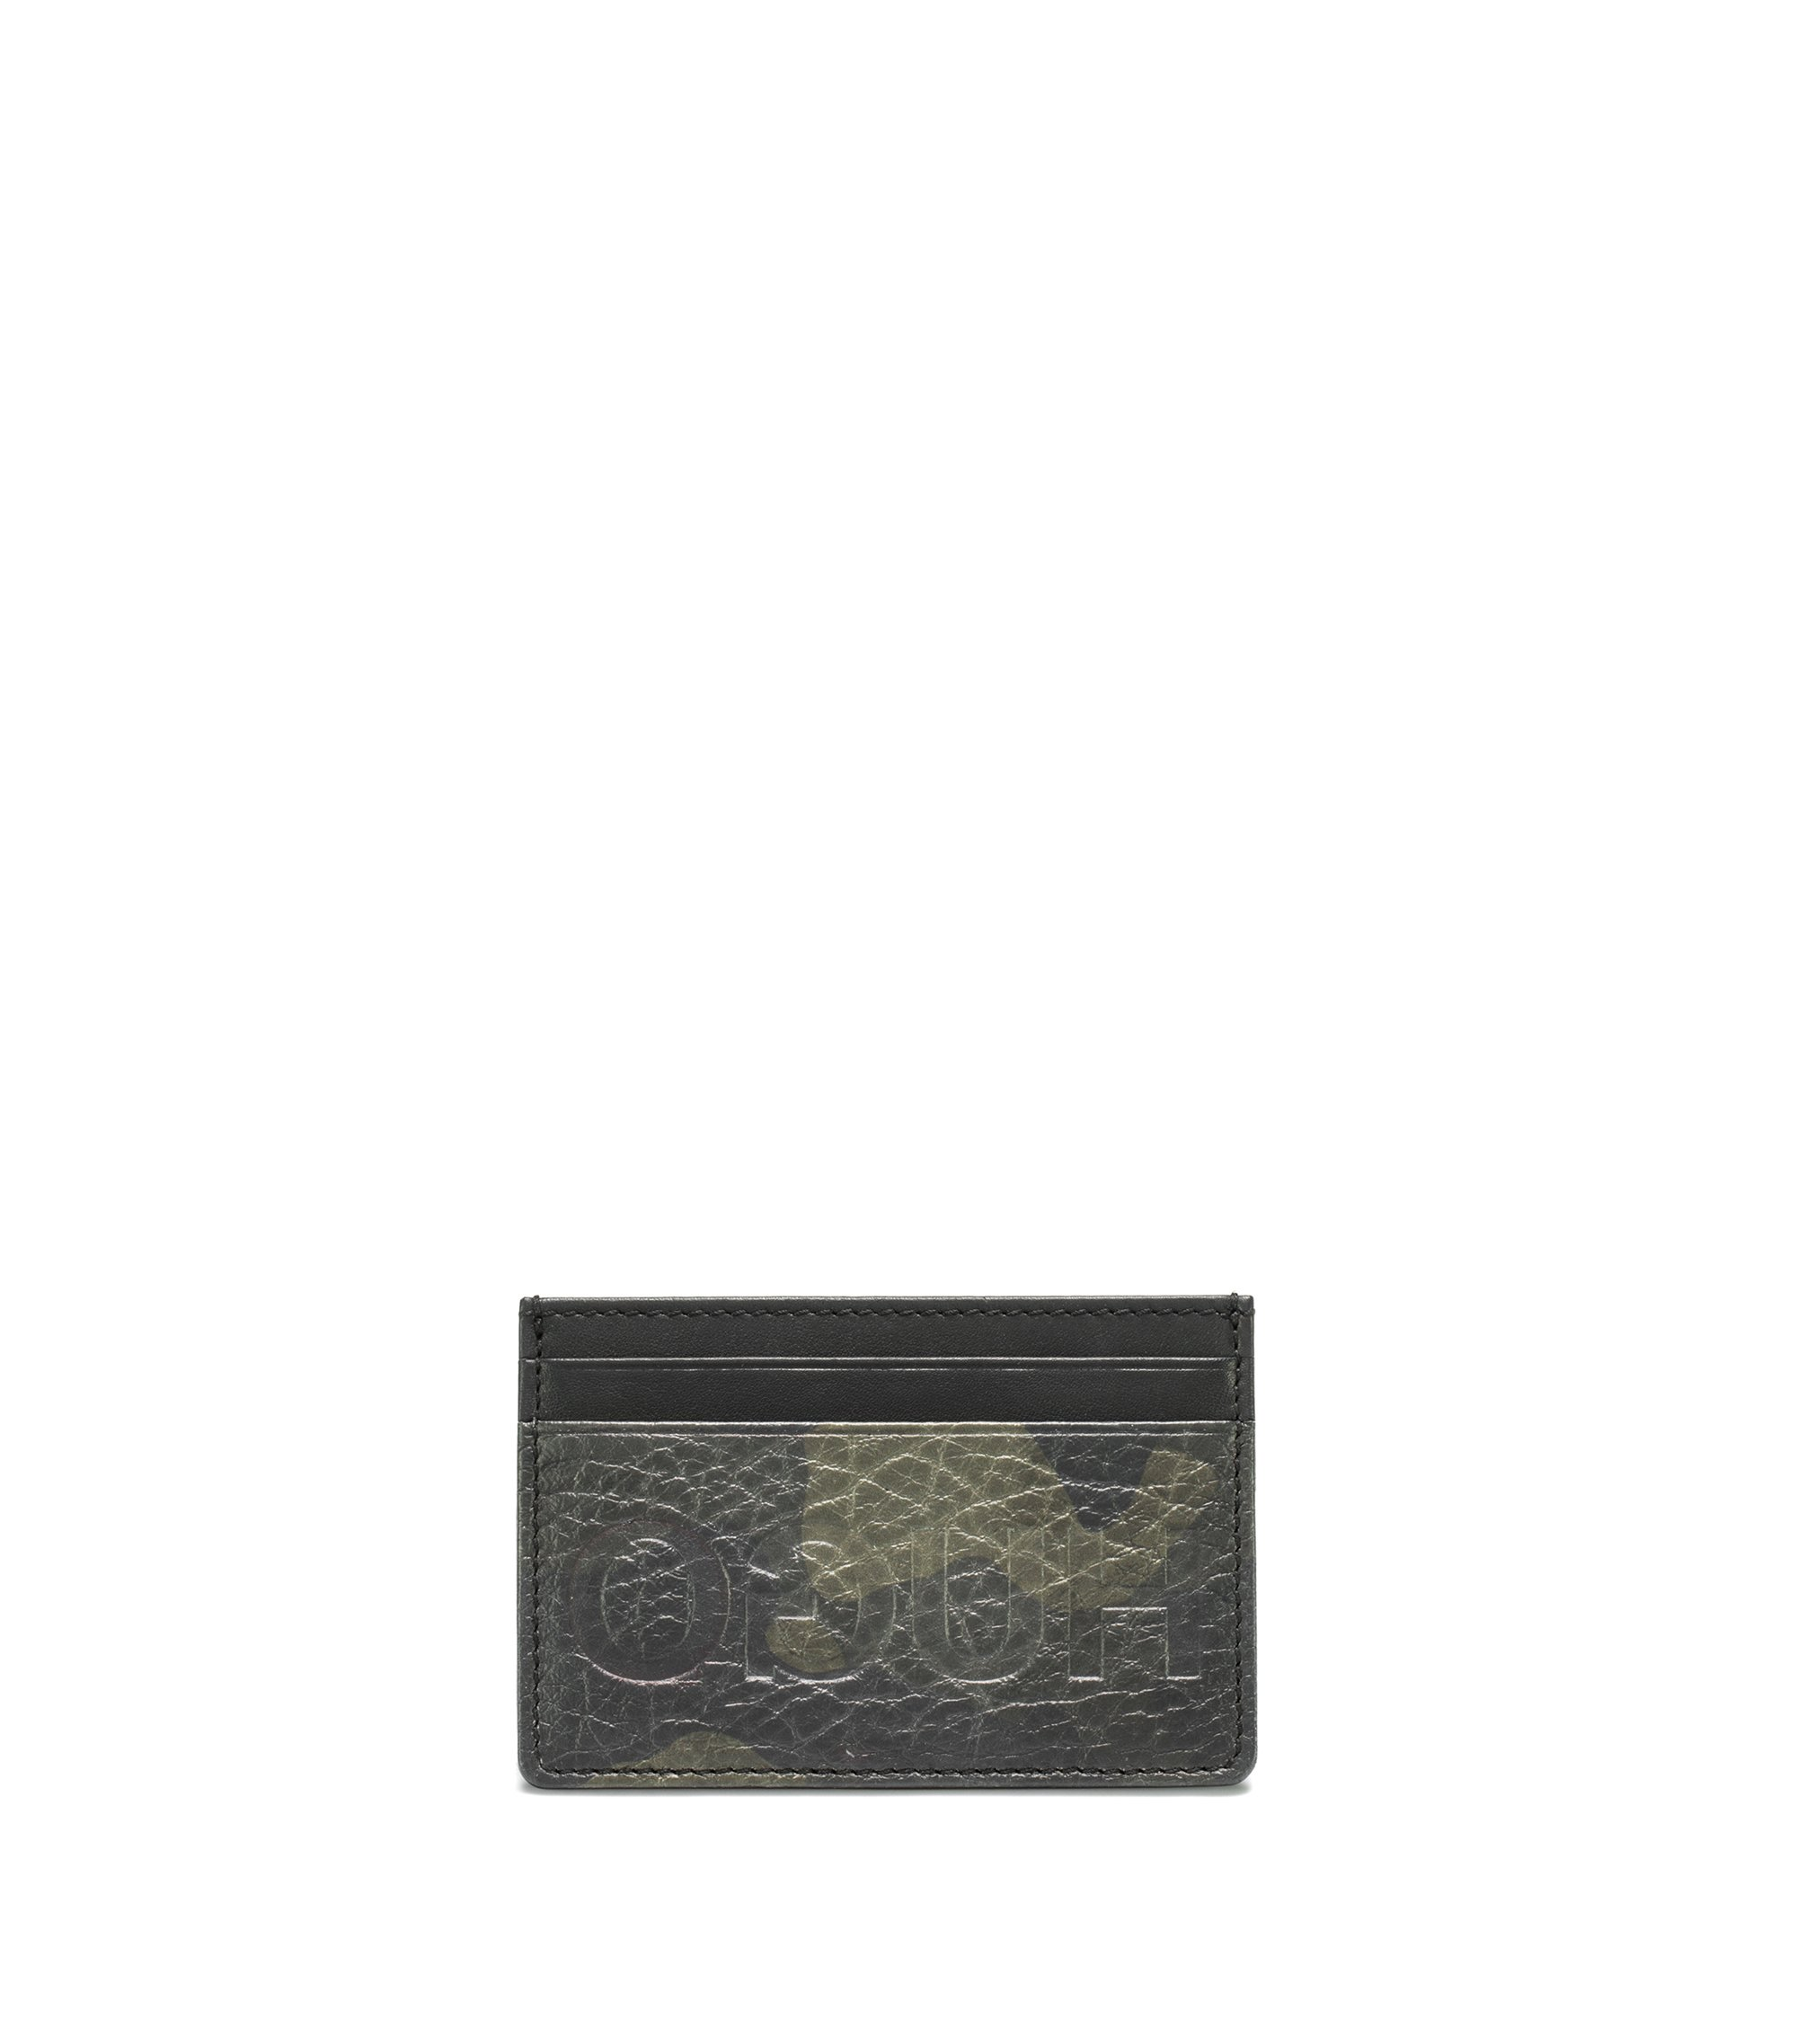 Camouflage-print leather card holder with reverse logo, Patterned